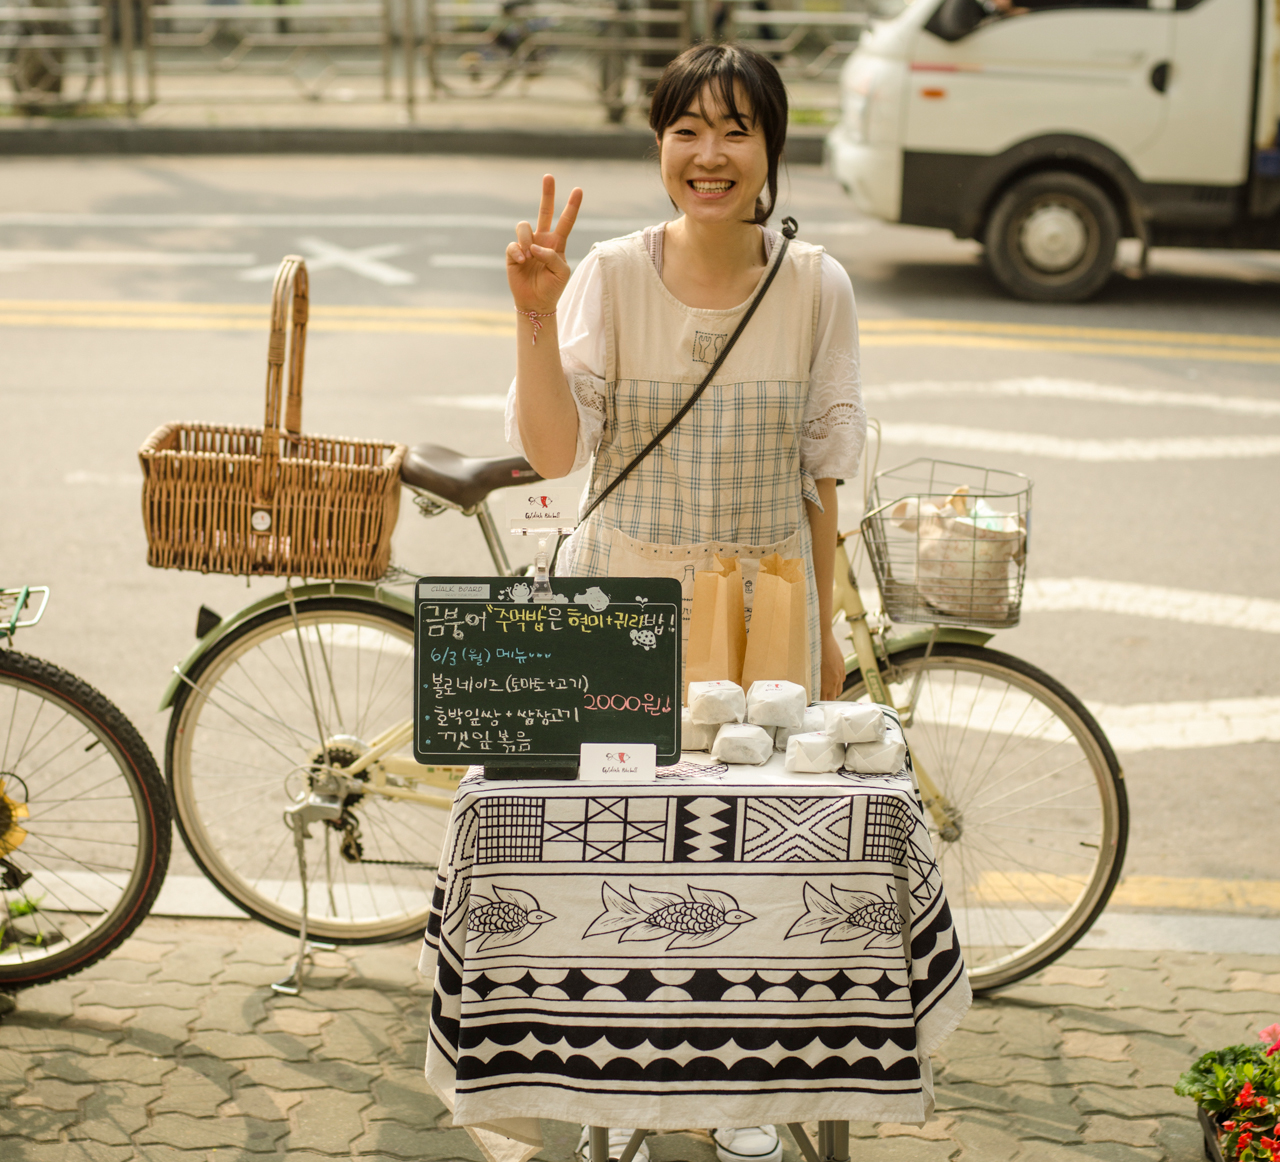 Chef GaYoung and her first bicycle-based shop in Seoul, South Korea. Image: Patrick Lydon